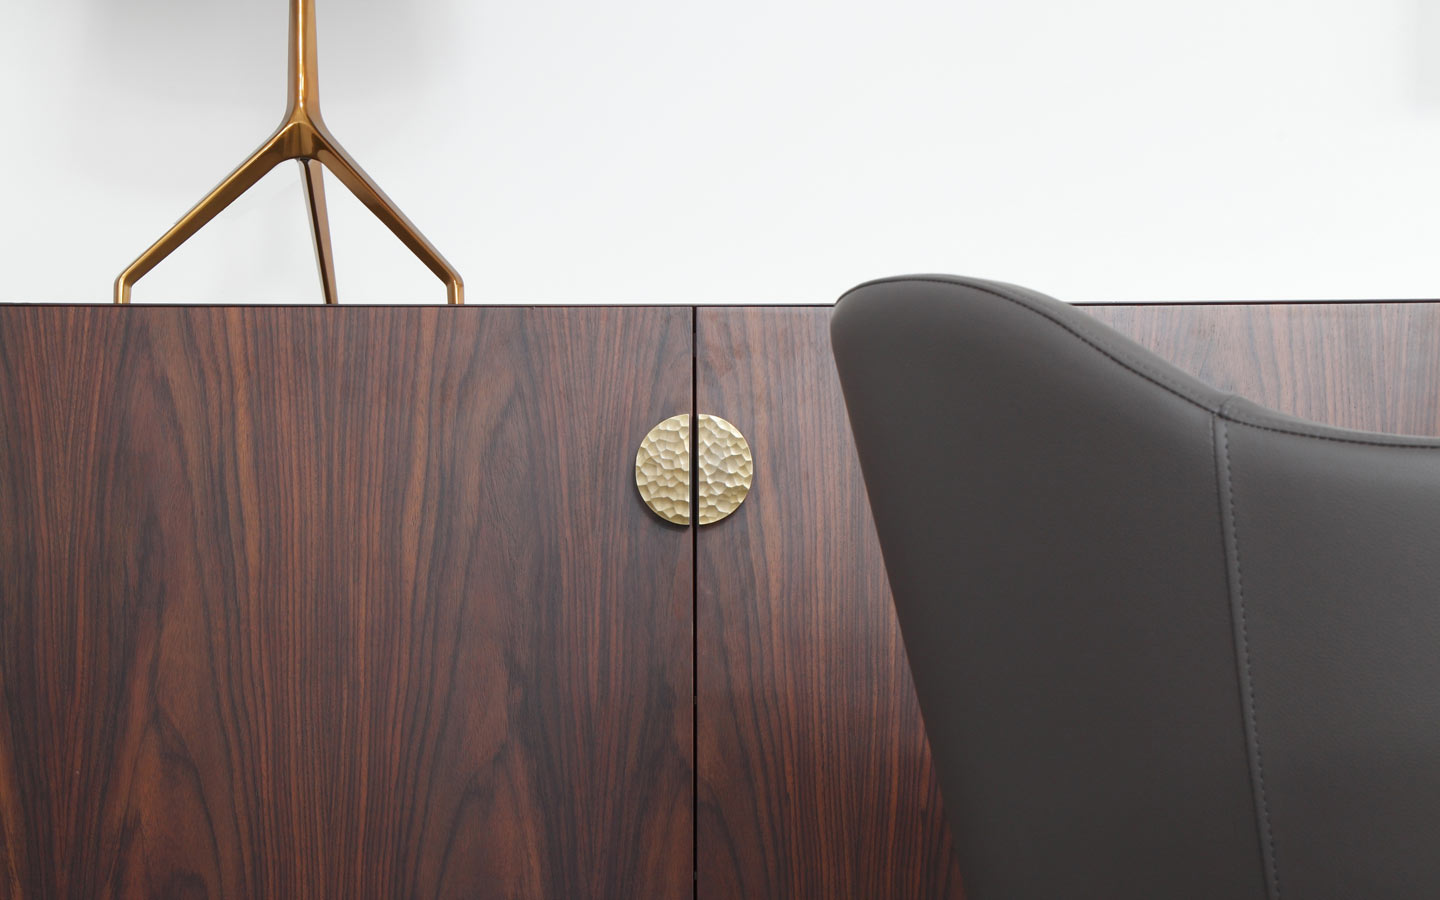 Mies cabinet designed by Studioloop in Rosewood with brass handle detail